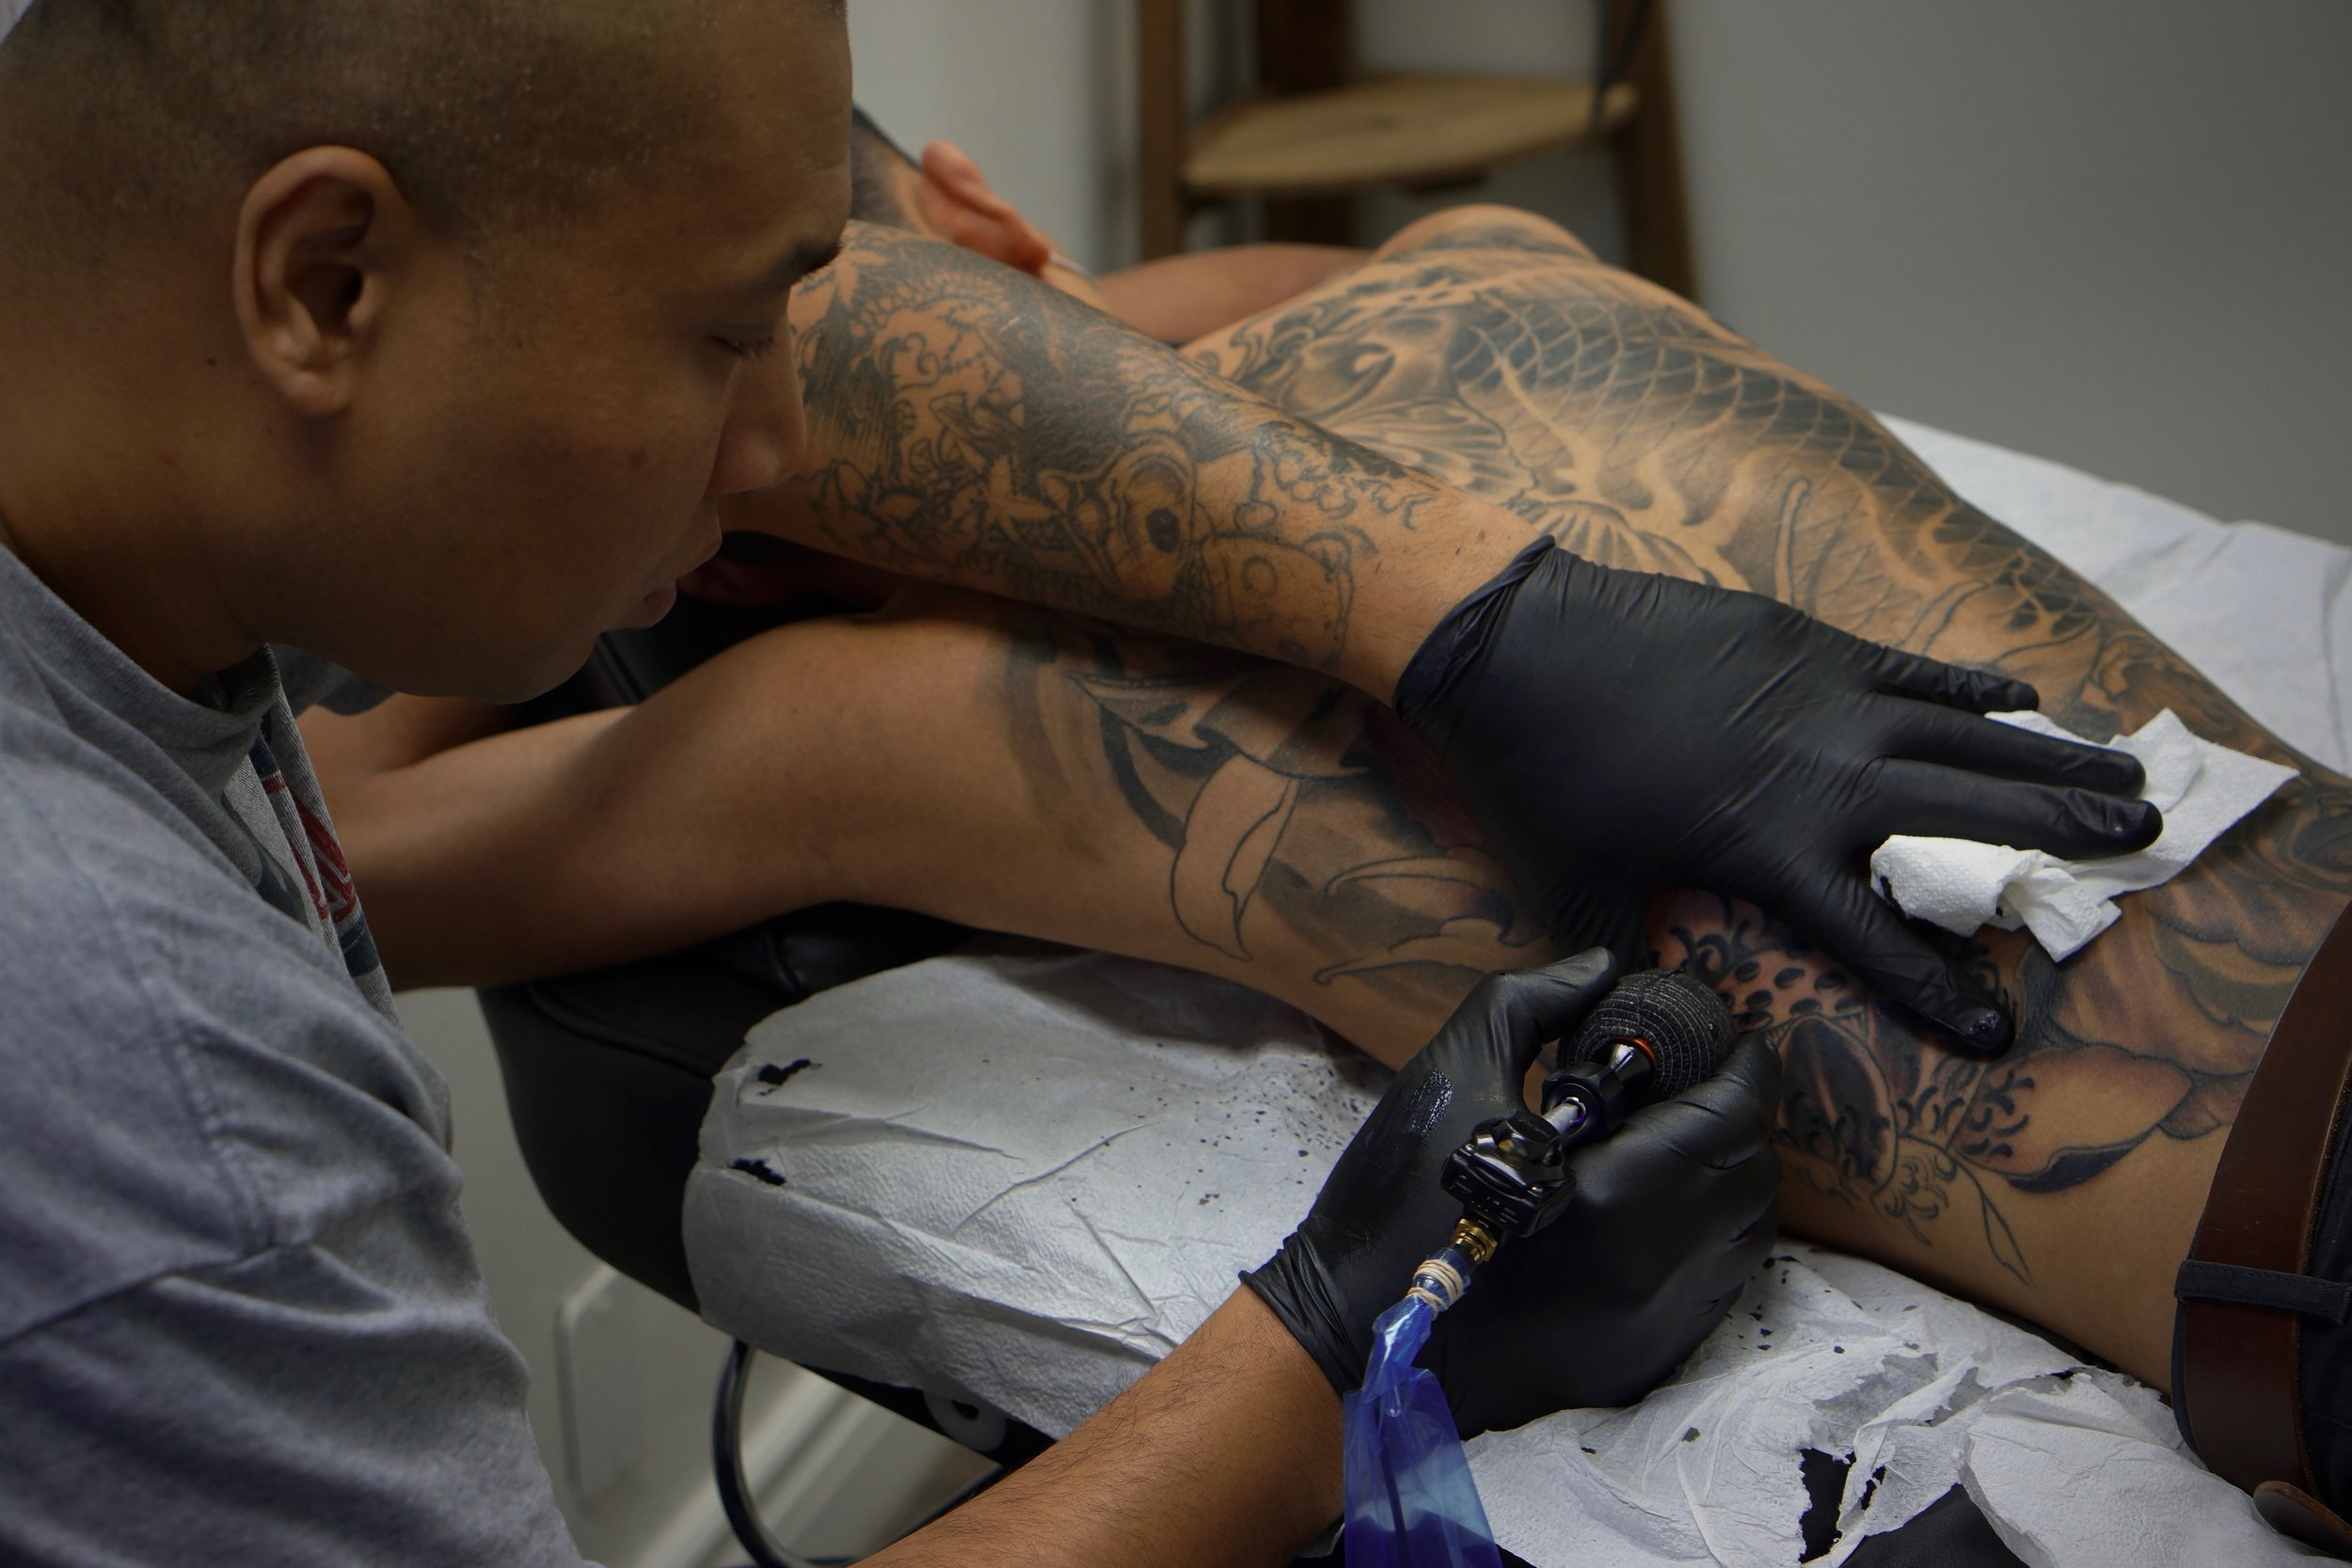 Shark specializes in asian style tattoos in Toronto, ON. Find him on pick the ink.com. @master_shark